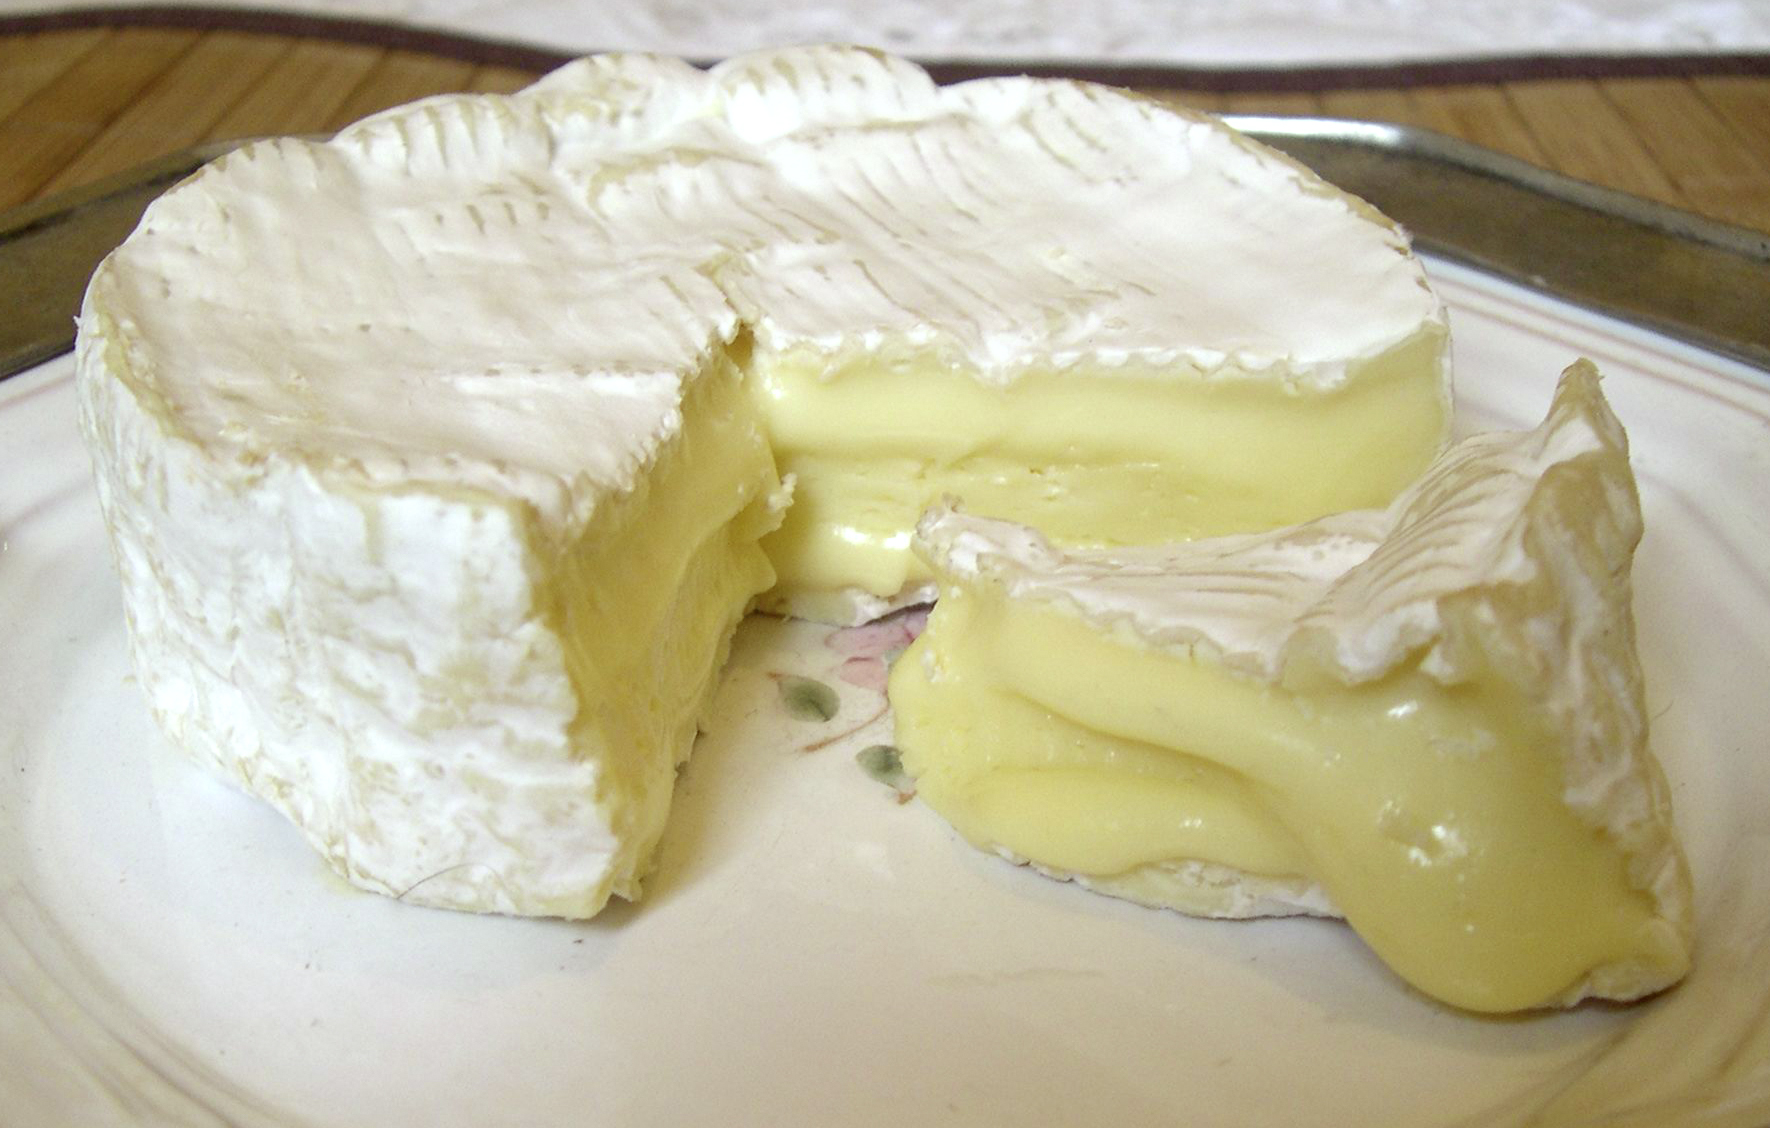 Camembert Cheese (AOC) has a pale yellow, runny interior.